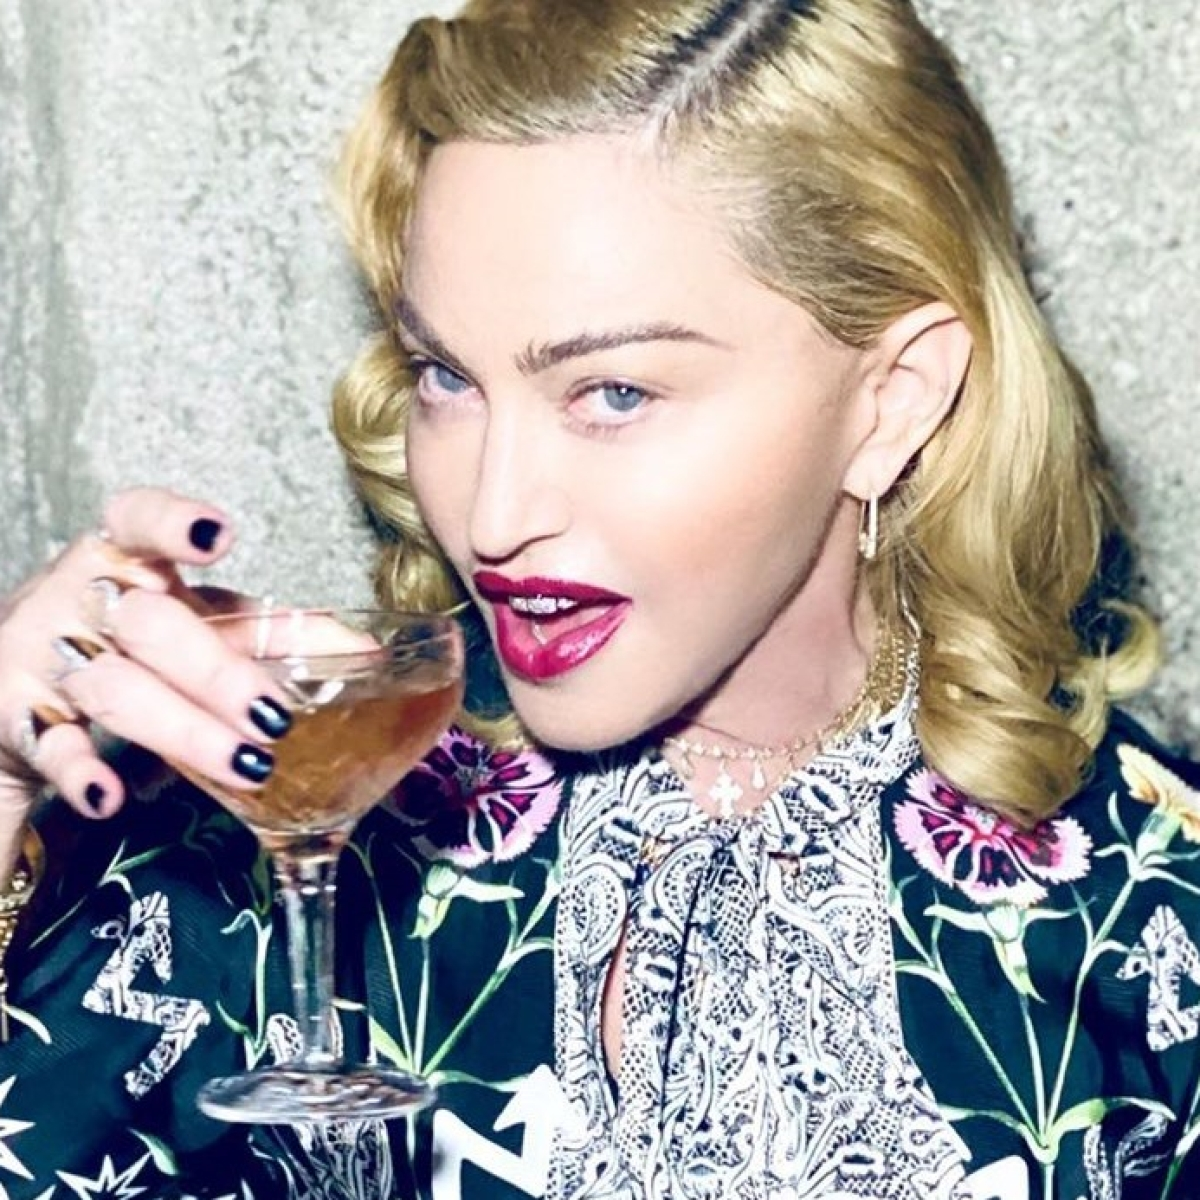 Madonna's post on COVID-19 vaccine blocked by Instagram over misinformation